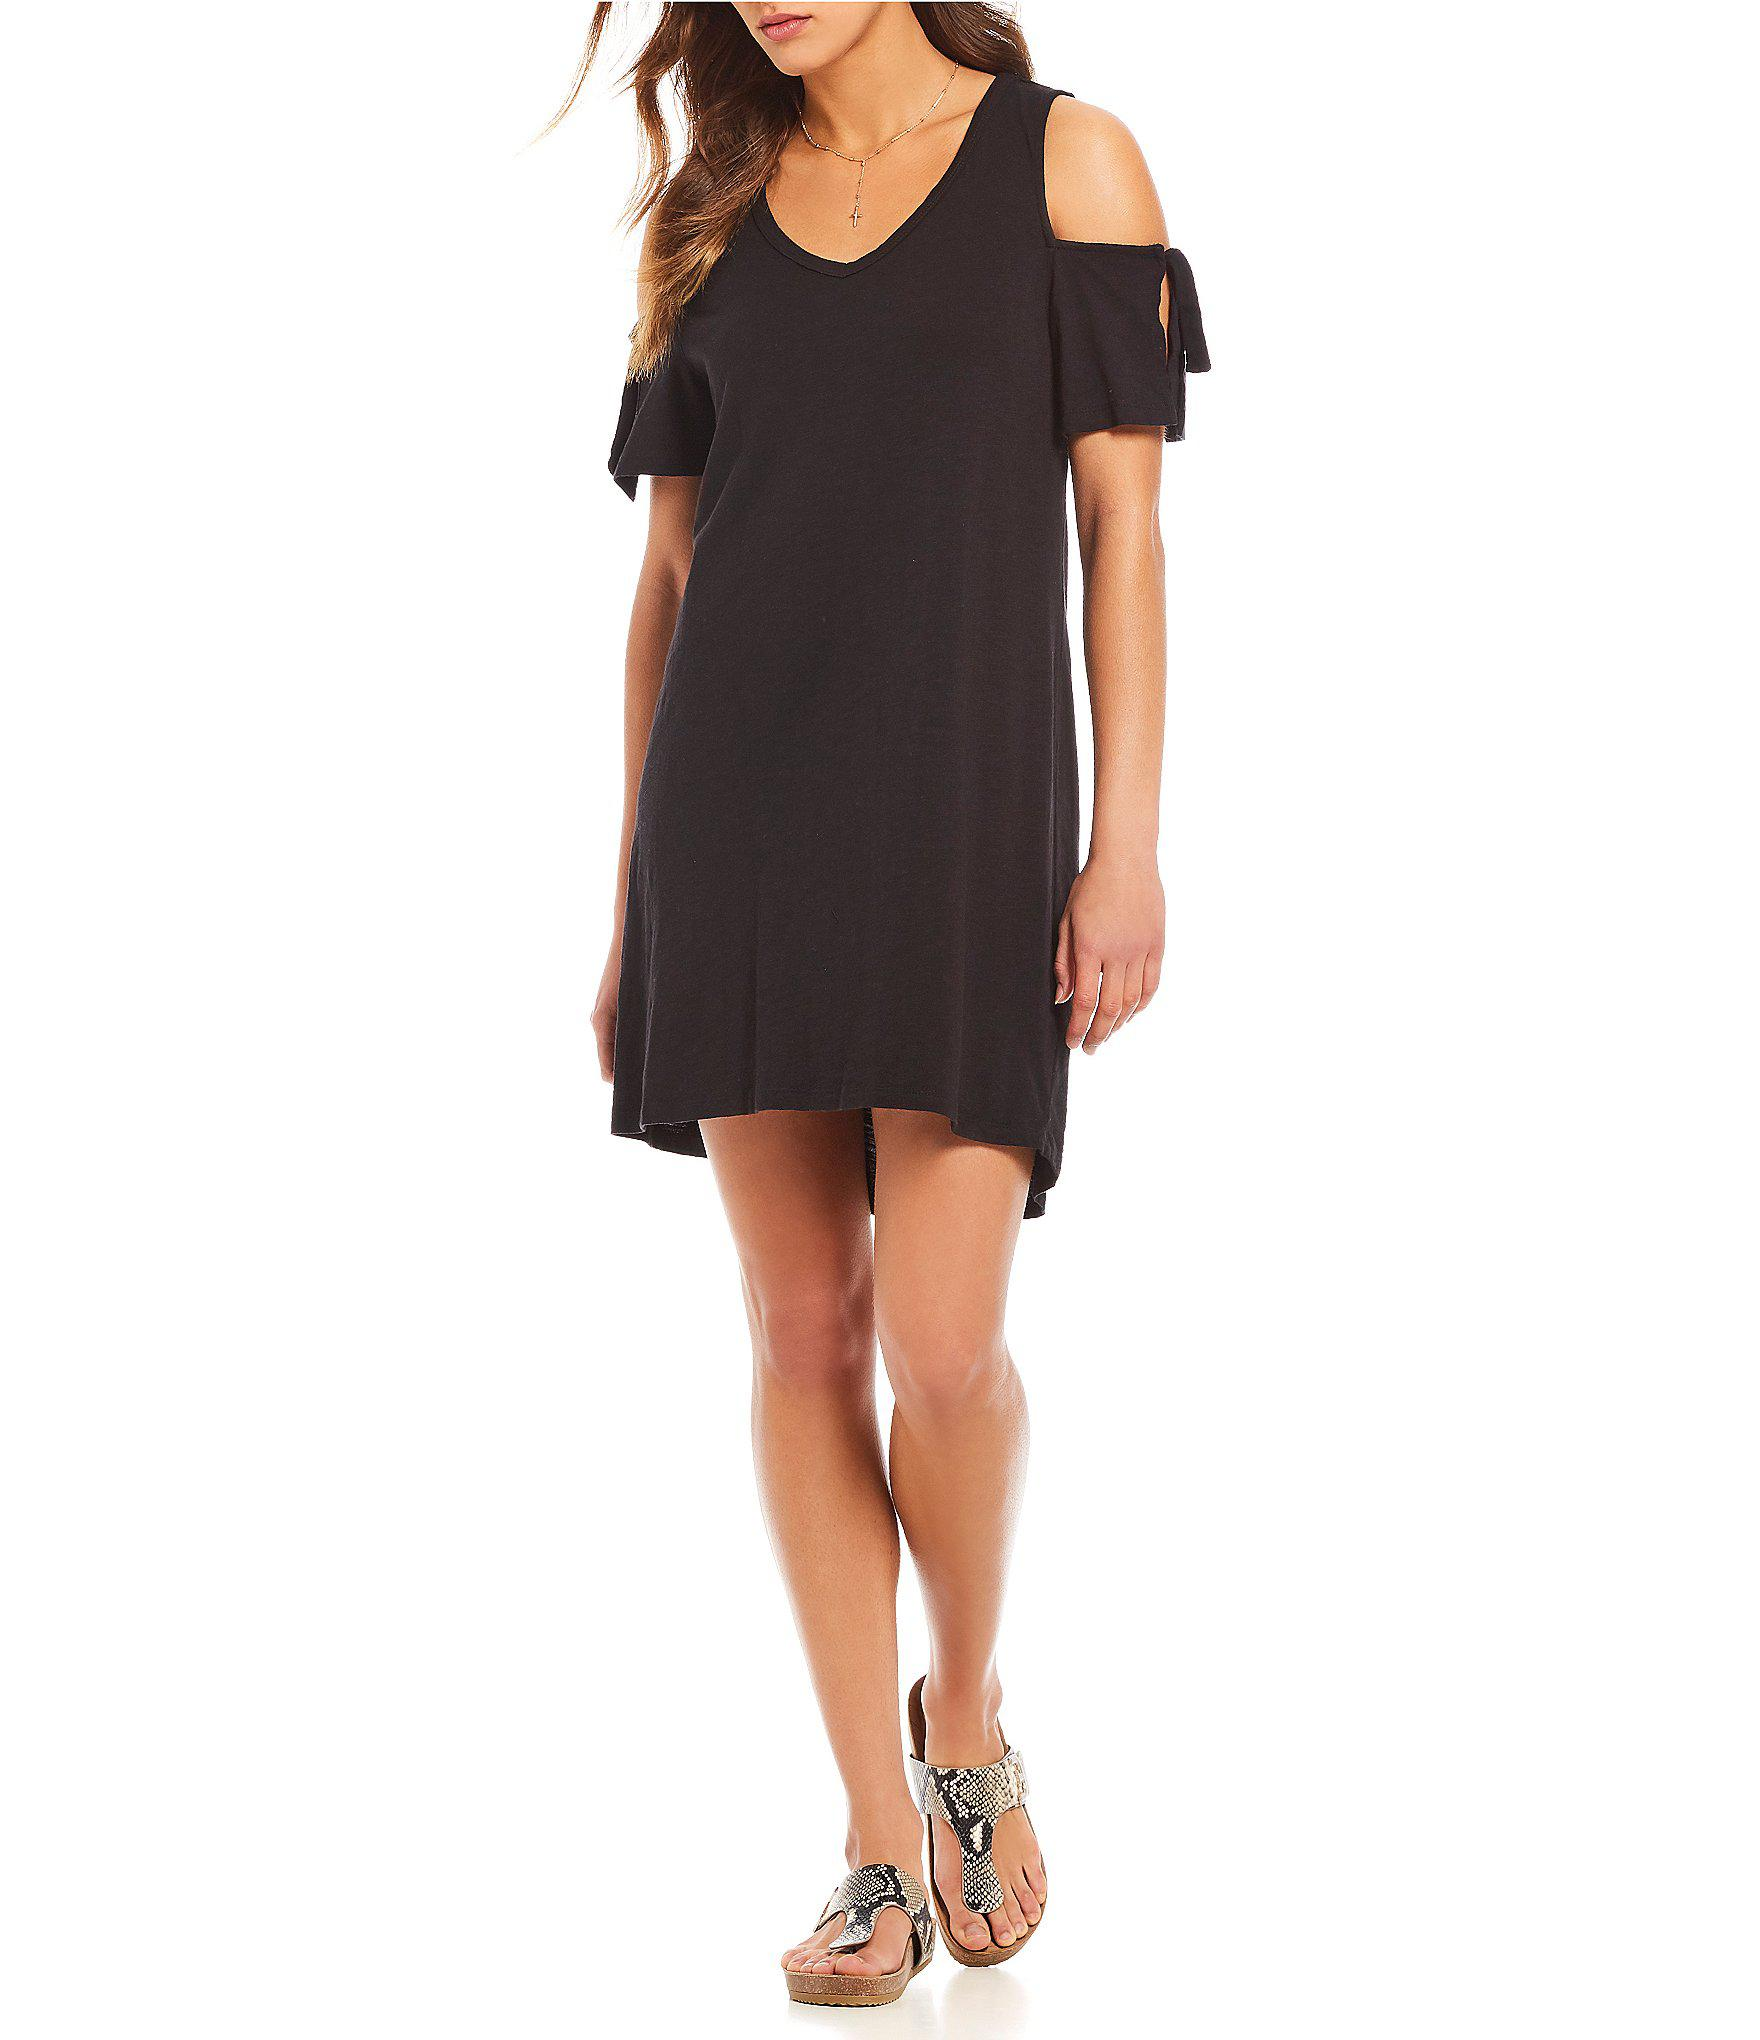 84180f9afa7eb Lyst - Sanctuary Lakeside Cold Shoulder Tie Sleeve T-shirt Dress in ...